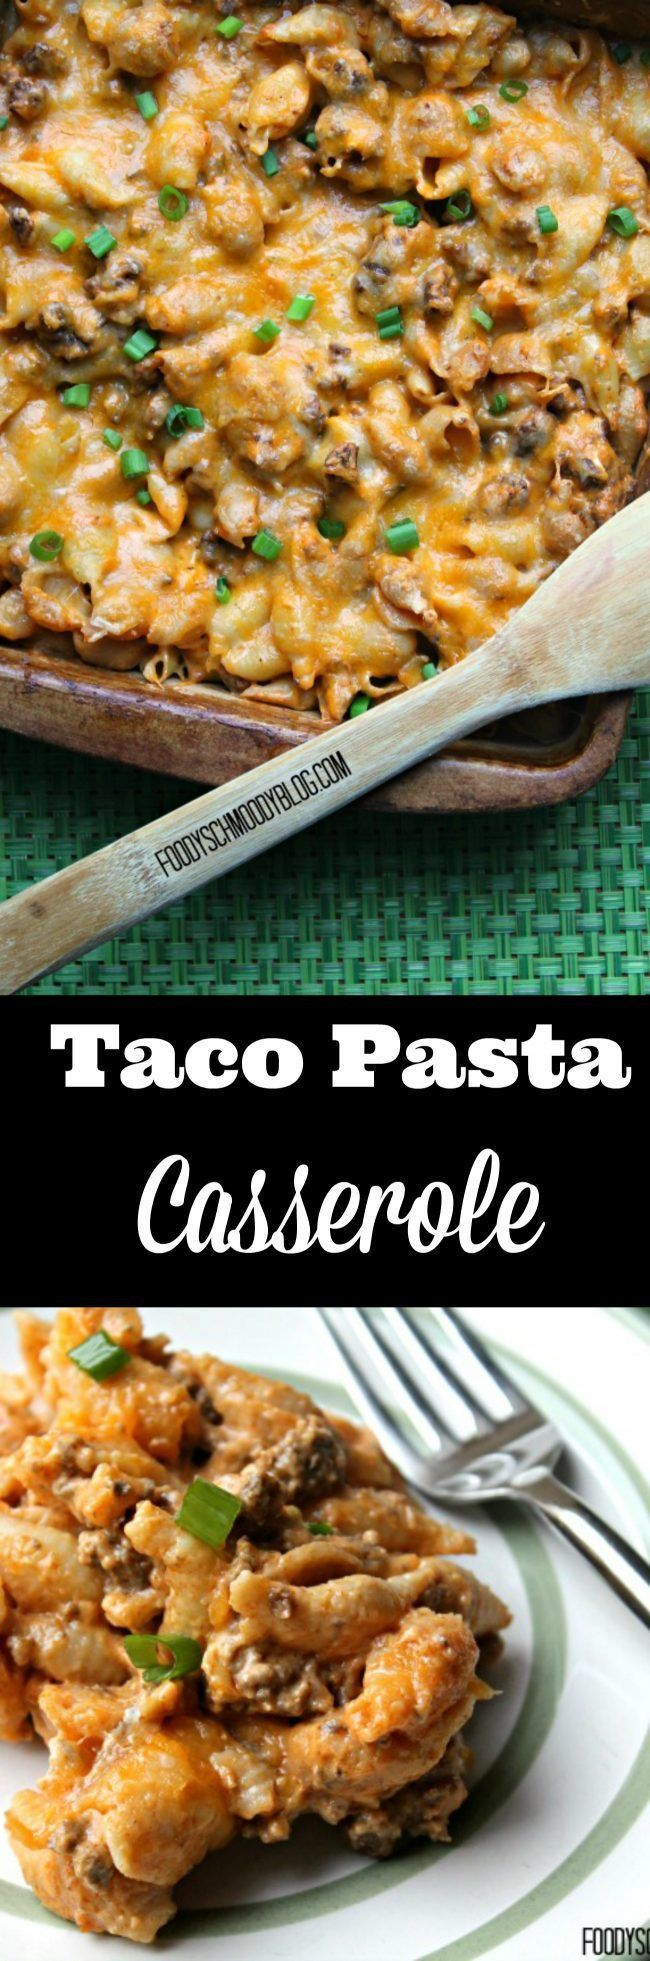 TACO PASTA CASSEROLE - The perfect, family friendly, weekend meal for those nights when you just can't decide between taco night or pasta night!